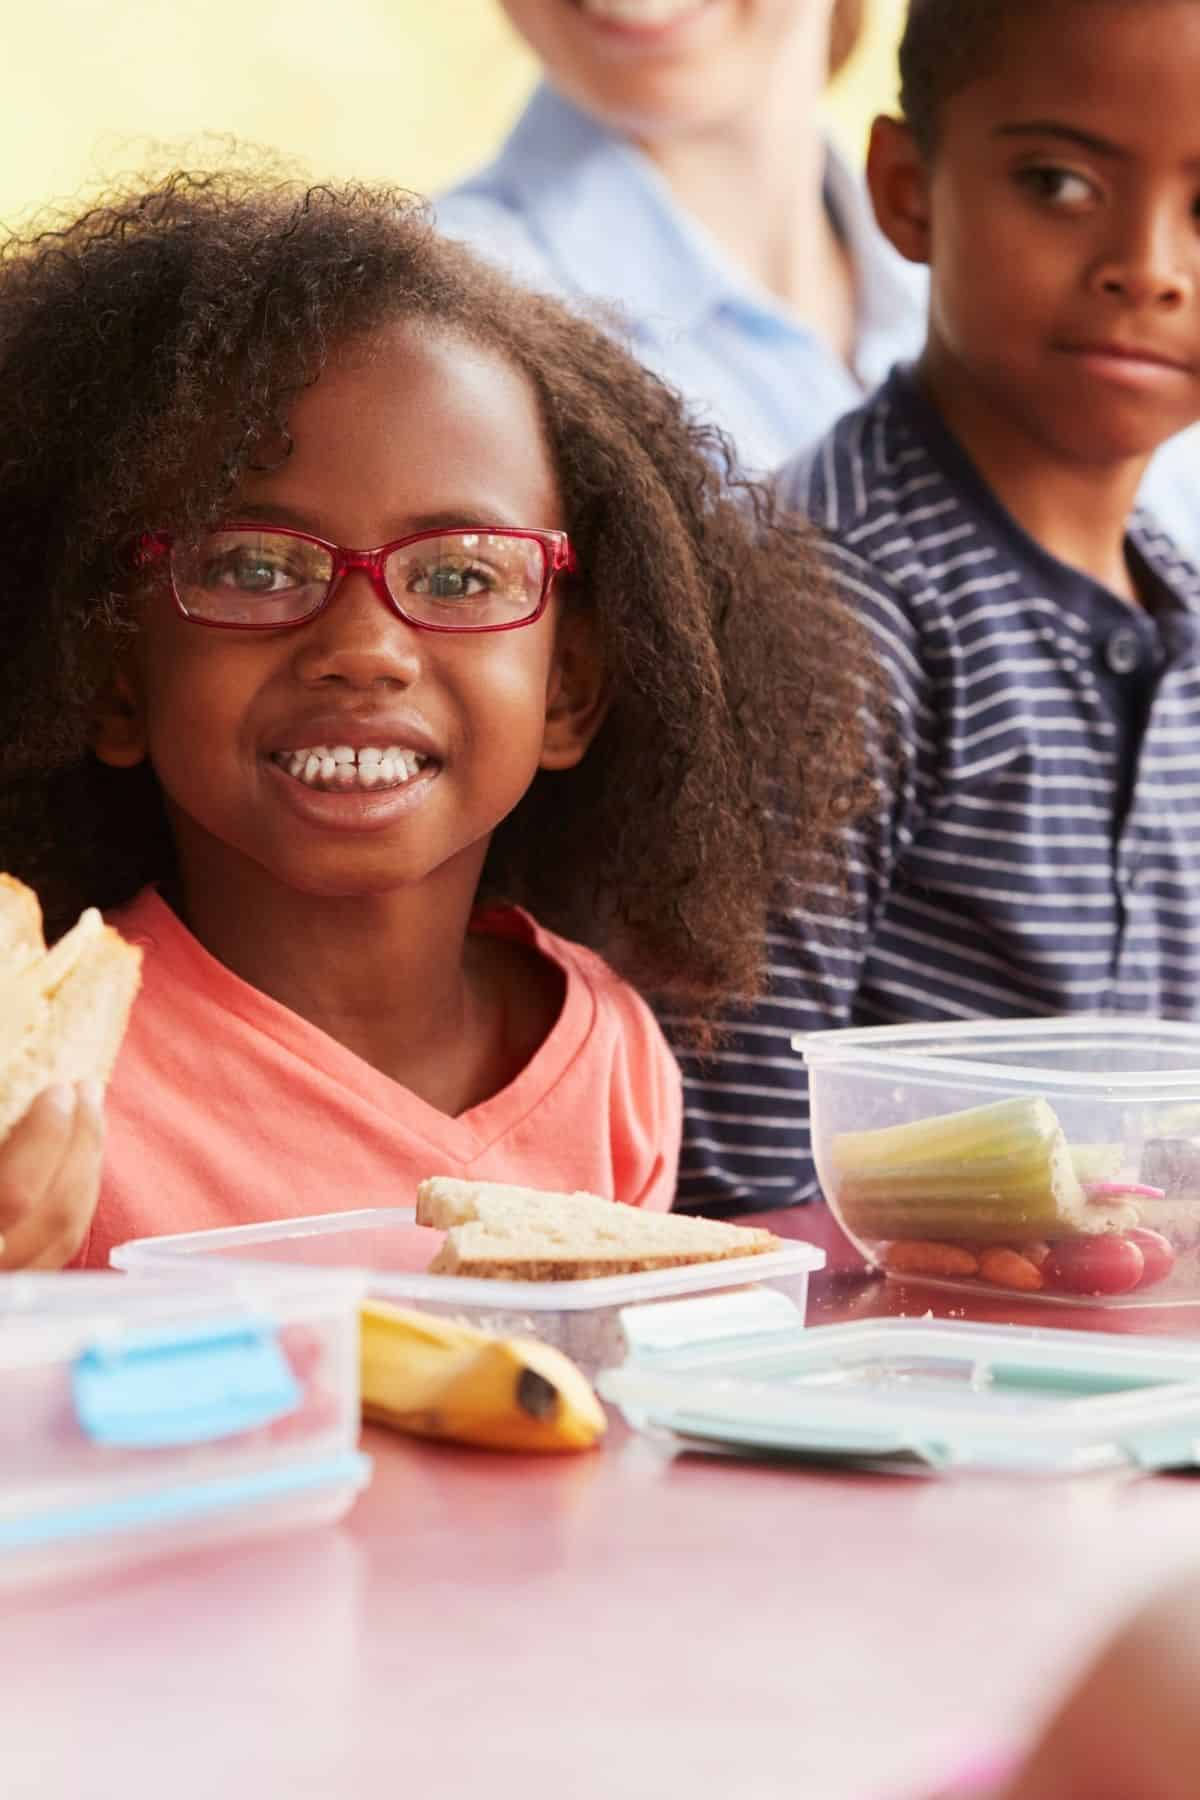 young child in glasses eating lunch